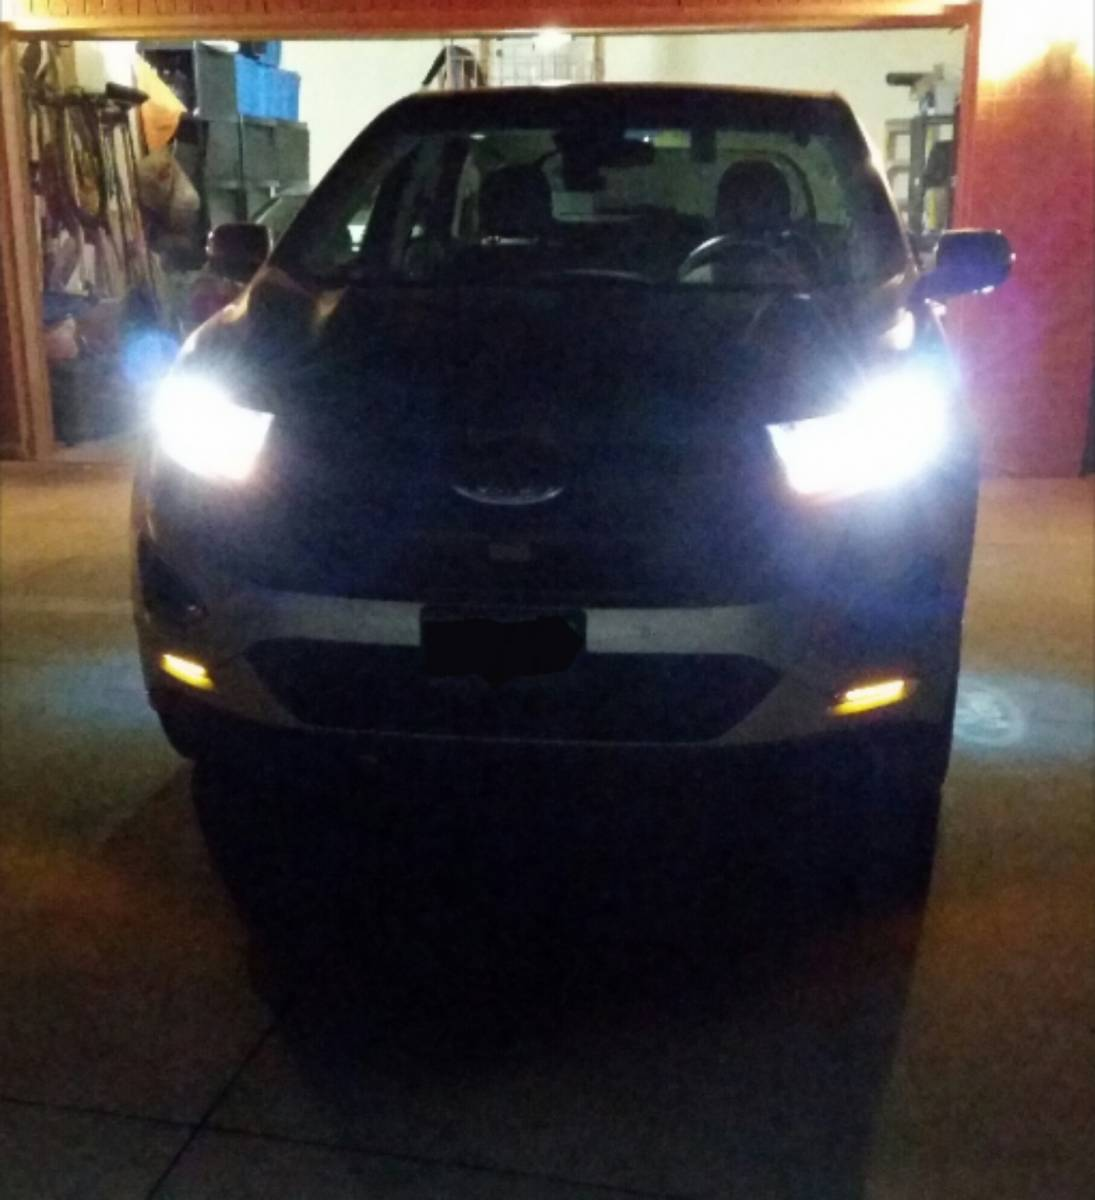 Amber Led's in lower bumper